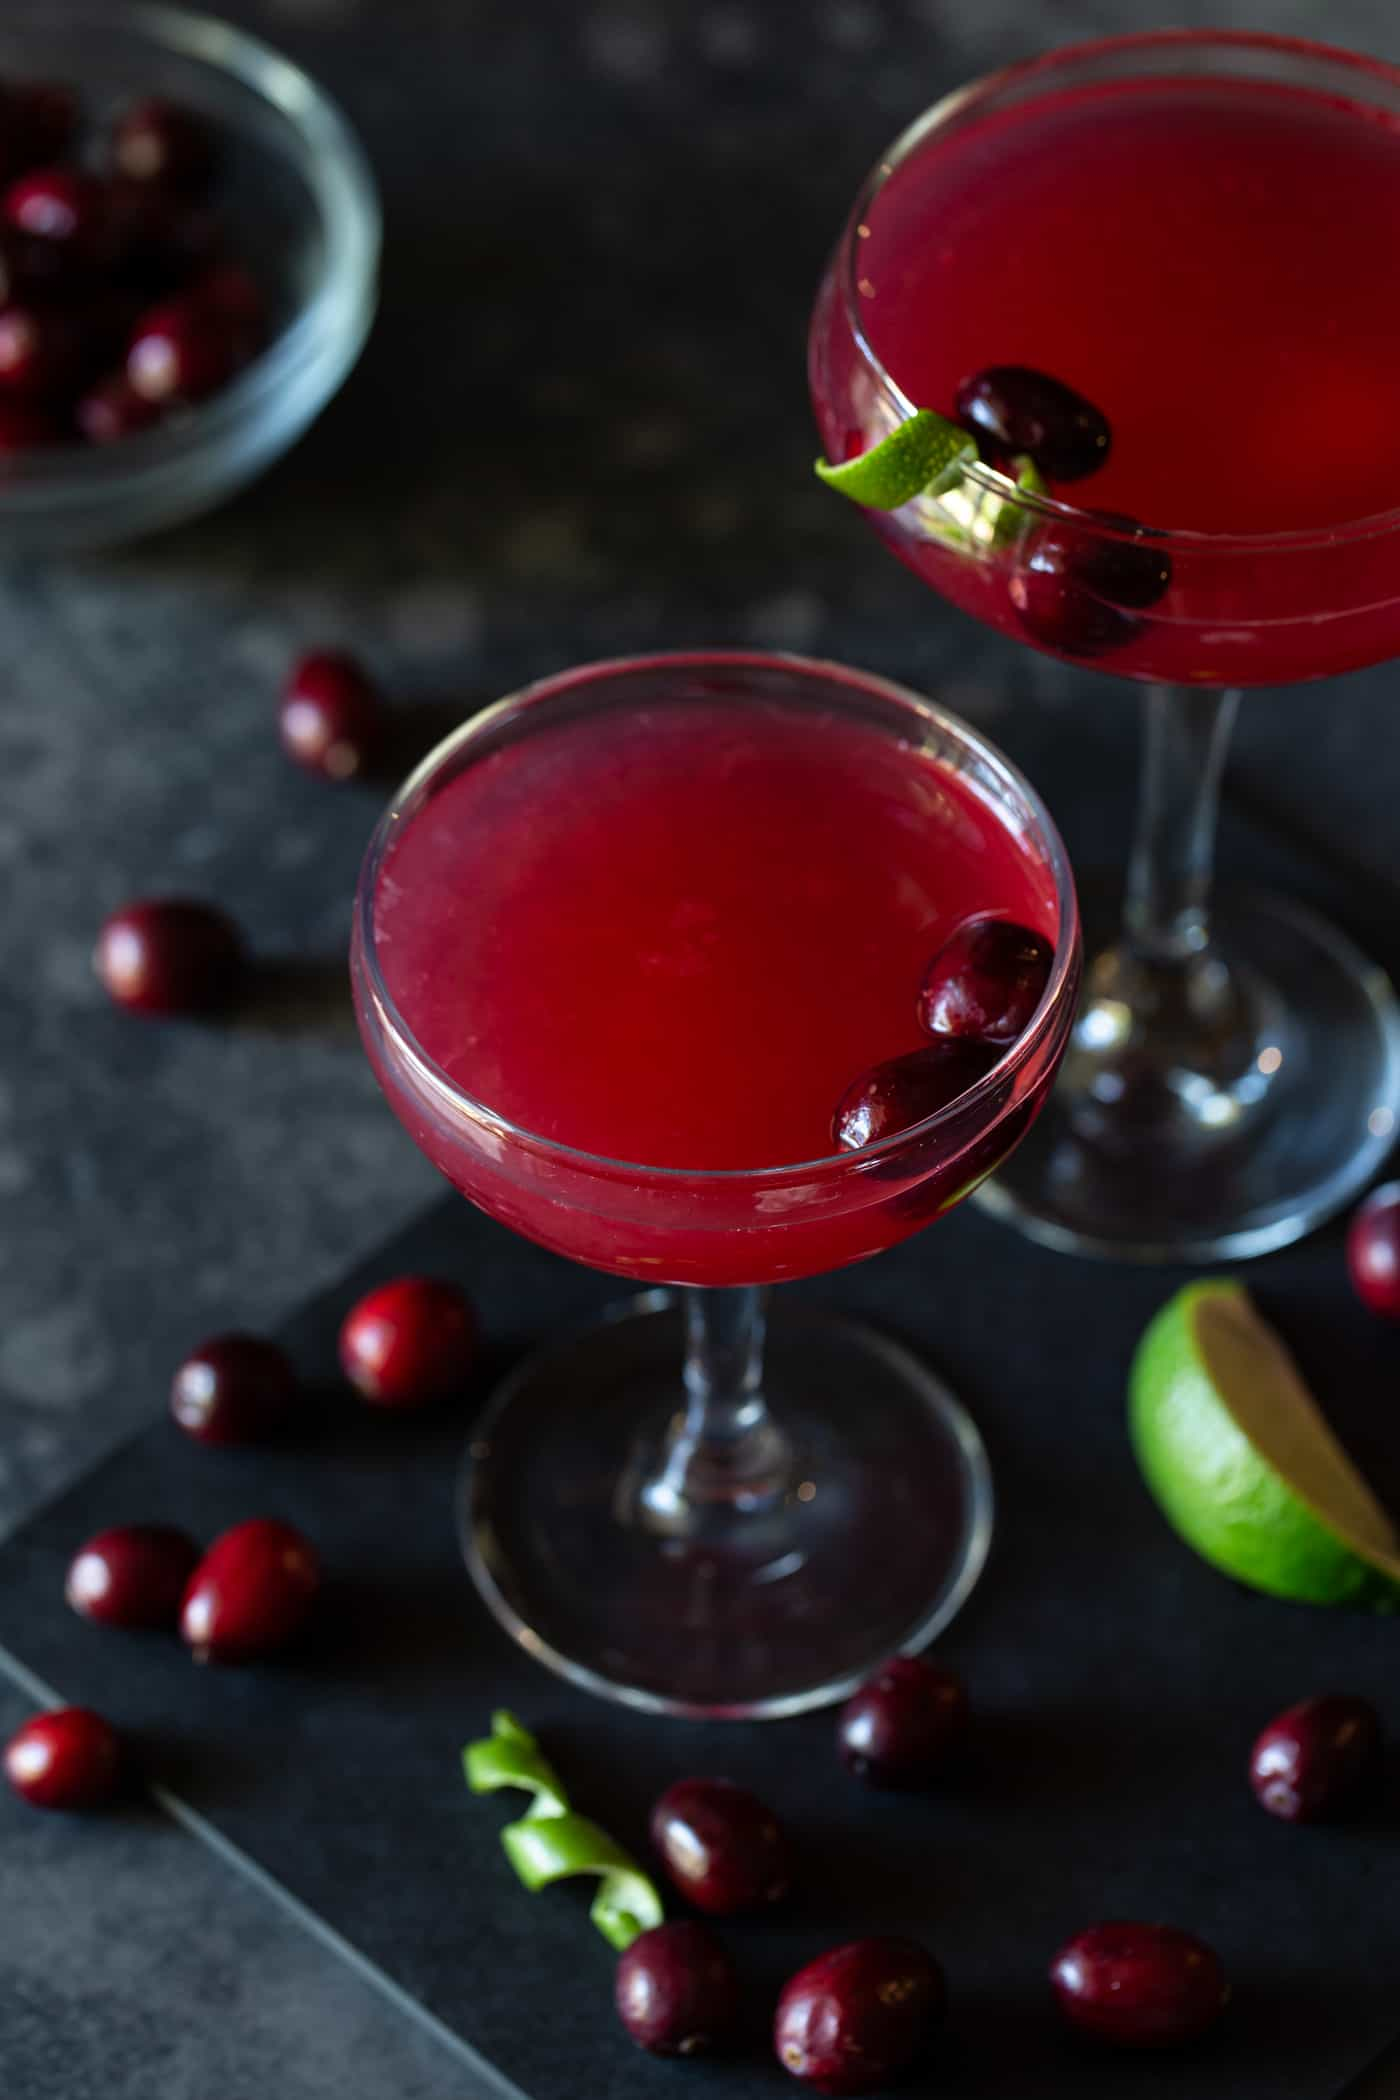 Two coupe glasses filled with Cranberry Vodka Gimlet Cocktails. Garnished with additional cranberries and fresh lime rind twists.